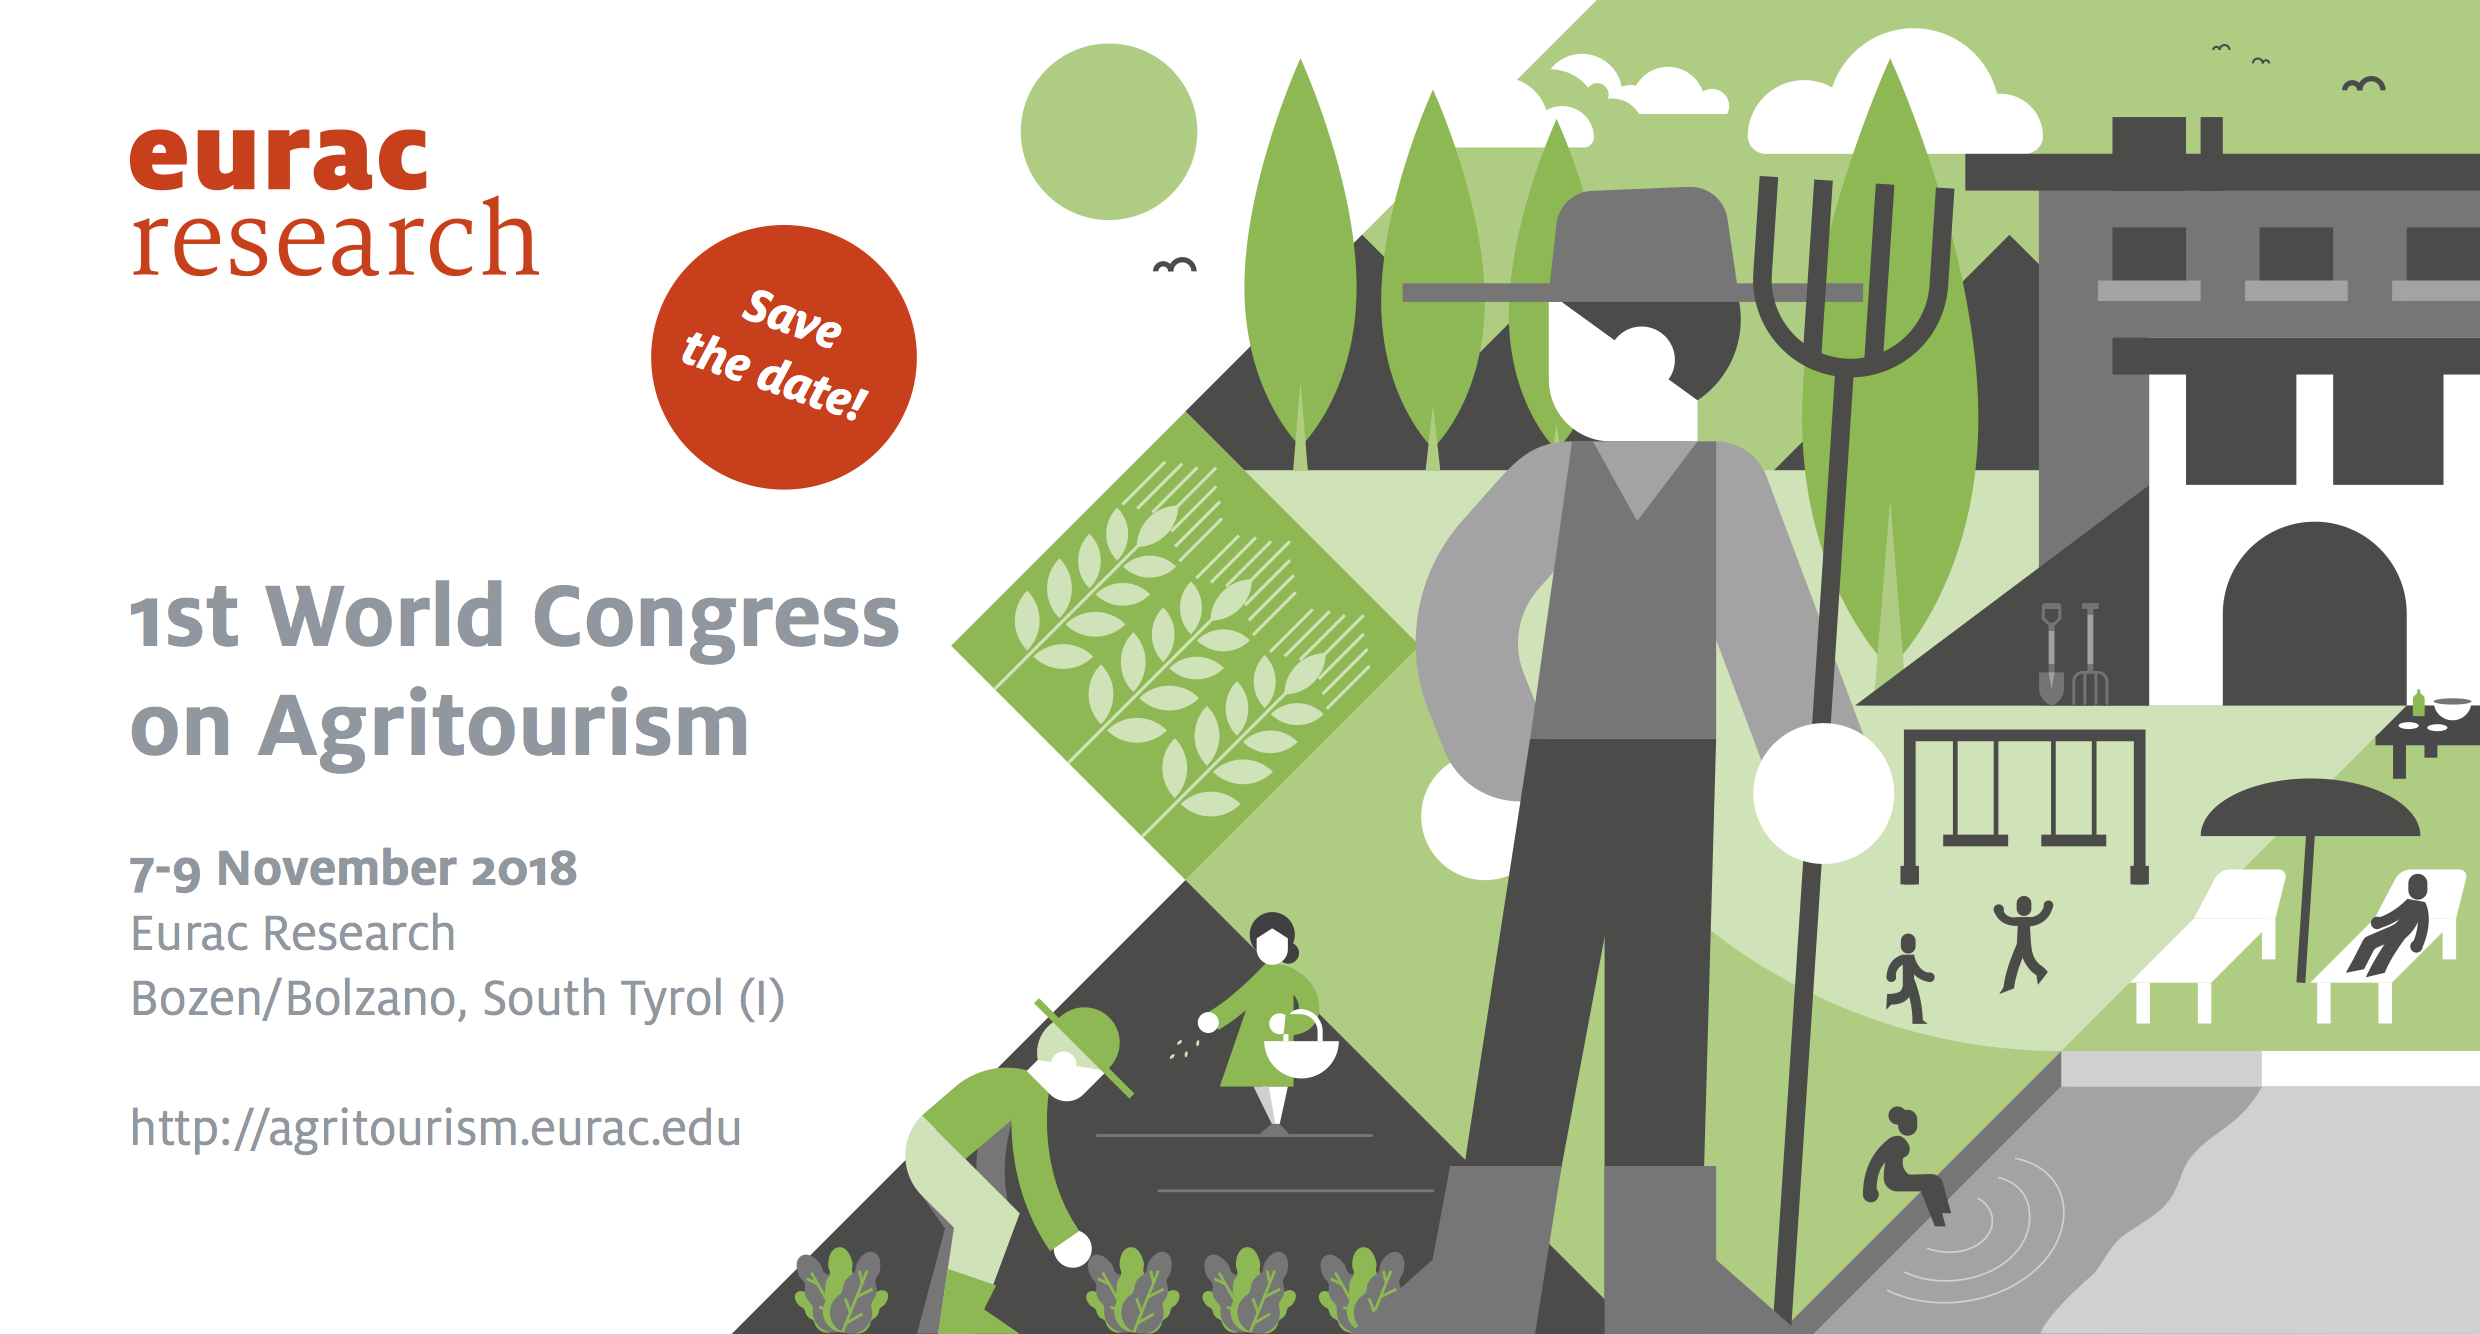 1st World Congress on Agritourism @ Eurac Research